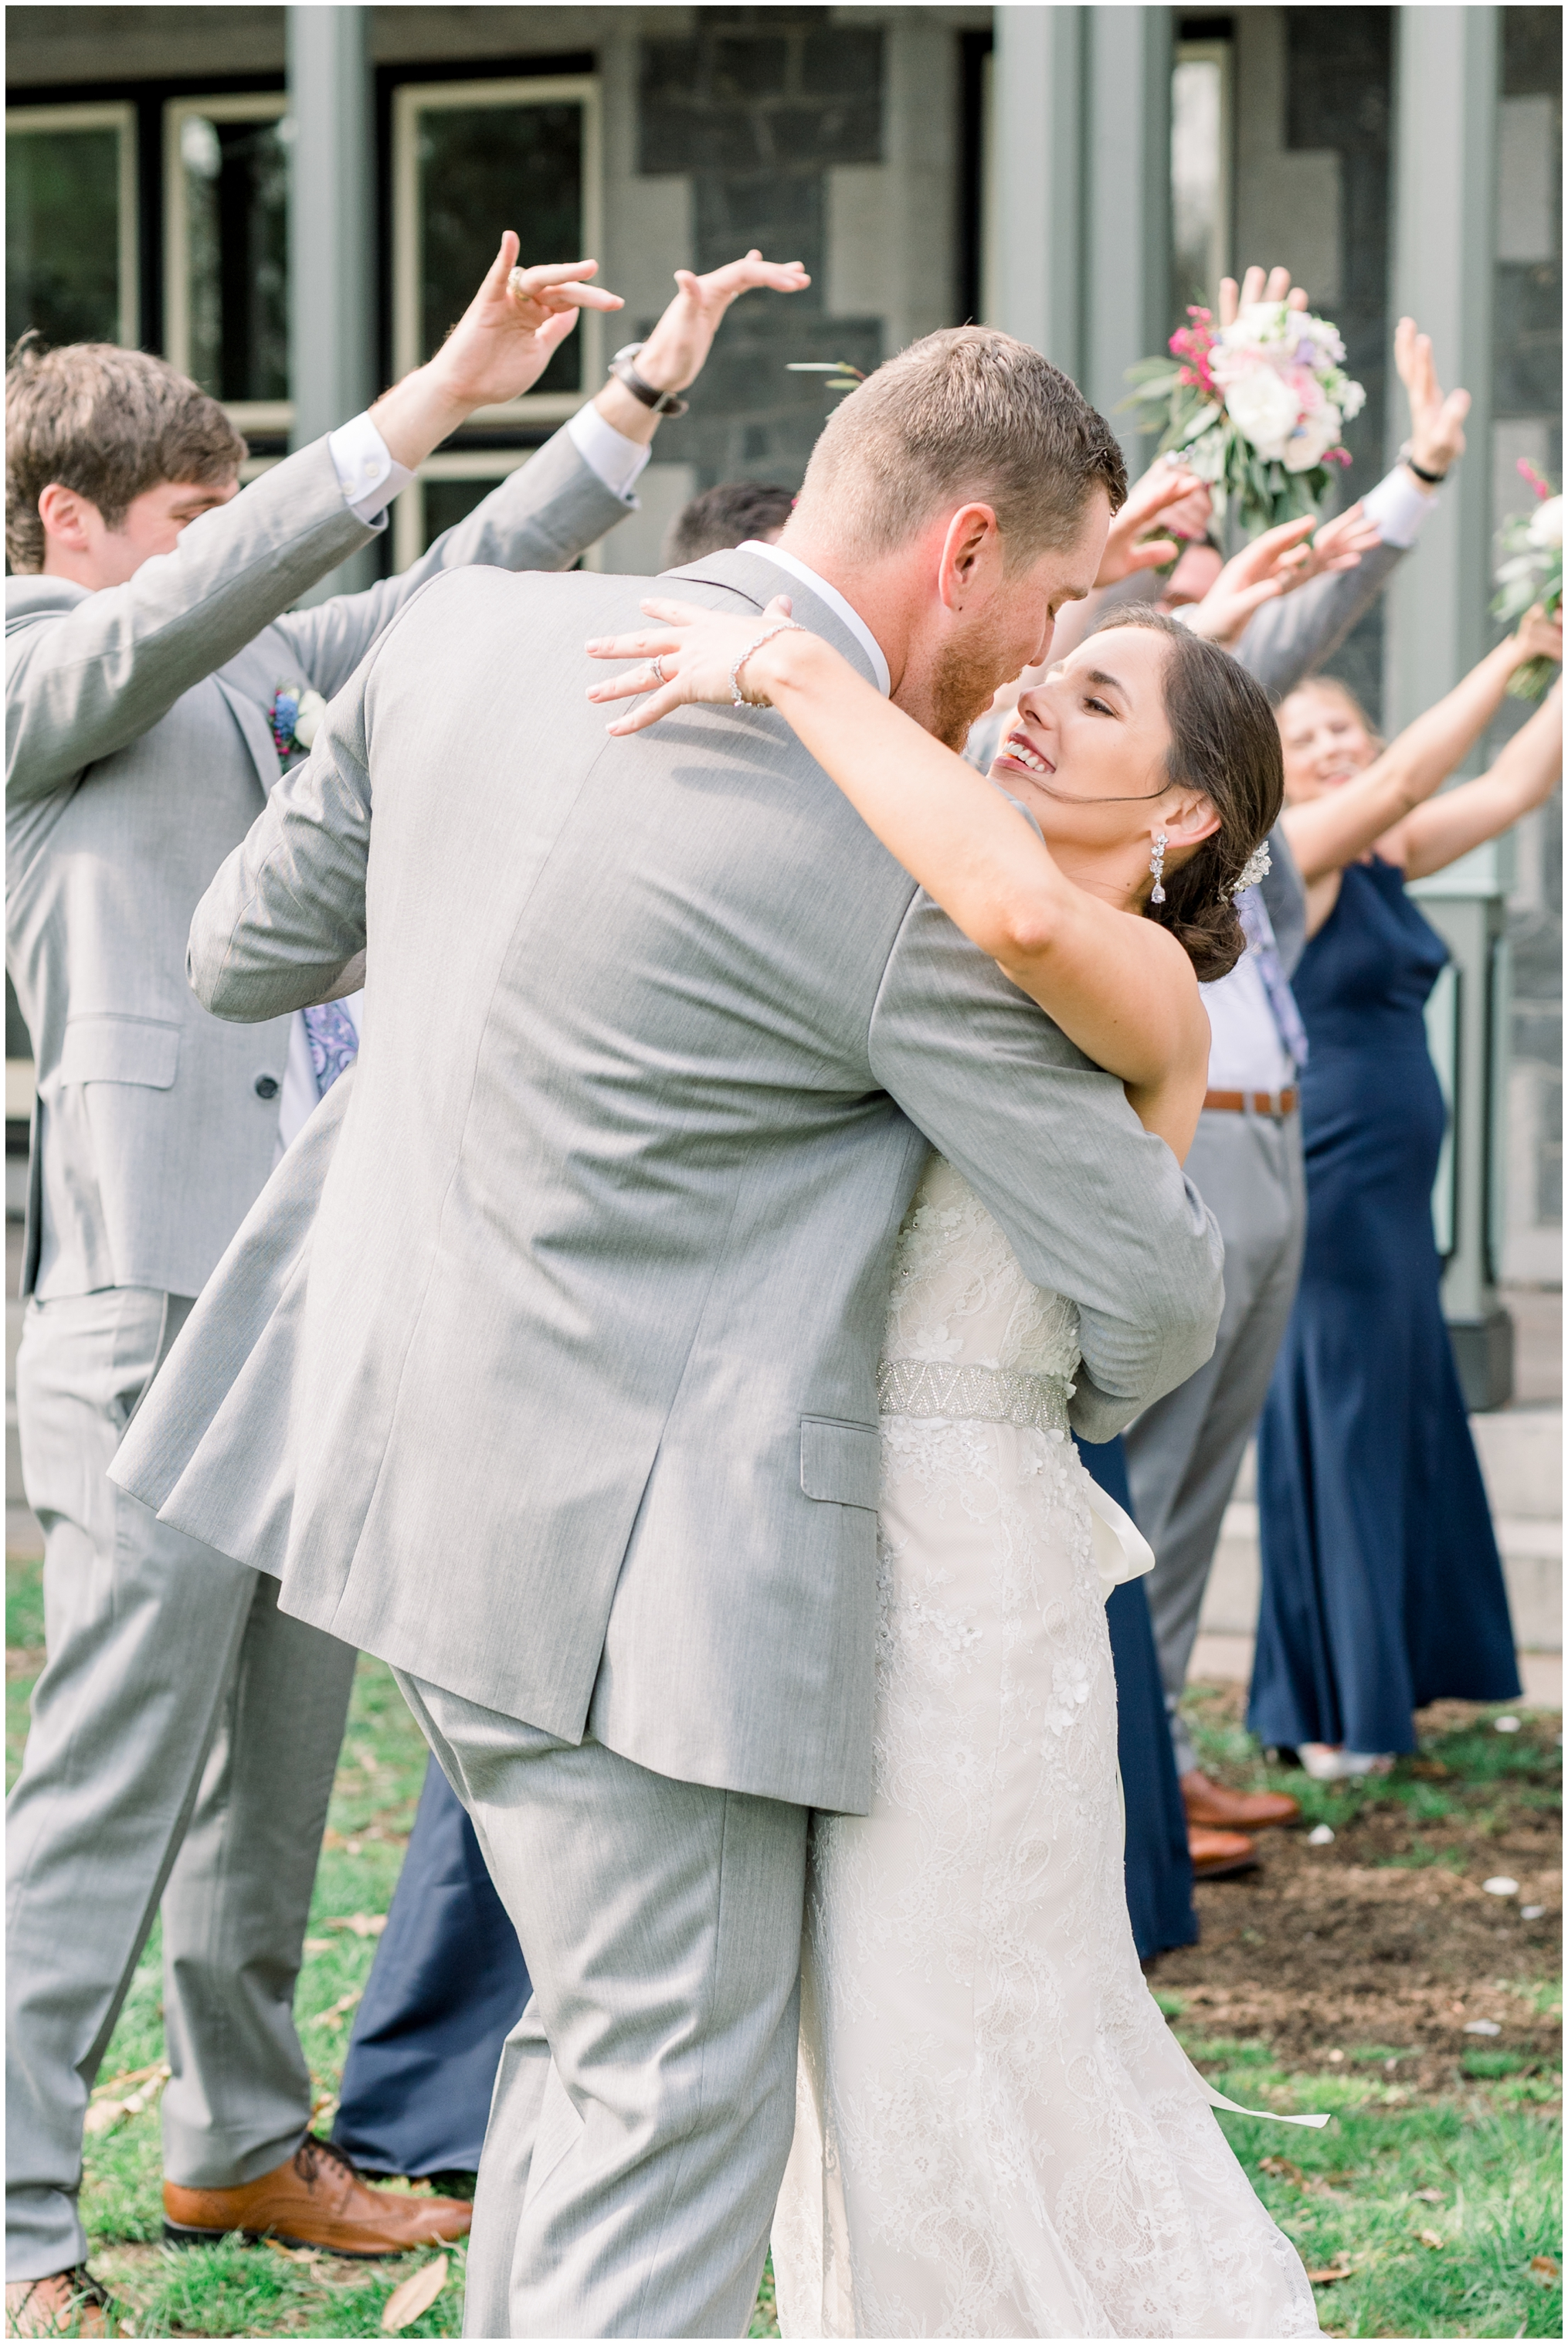 Krista Brackin Photography | April Wedding at The Carriage House at Rockwood Park_0069.jpg